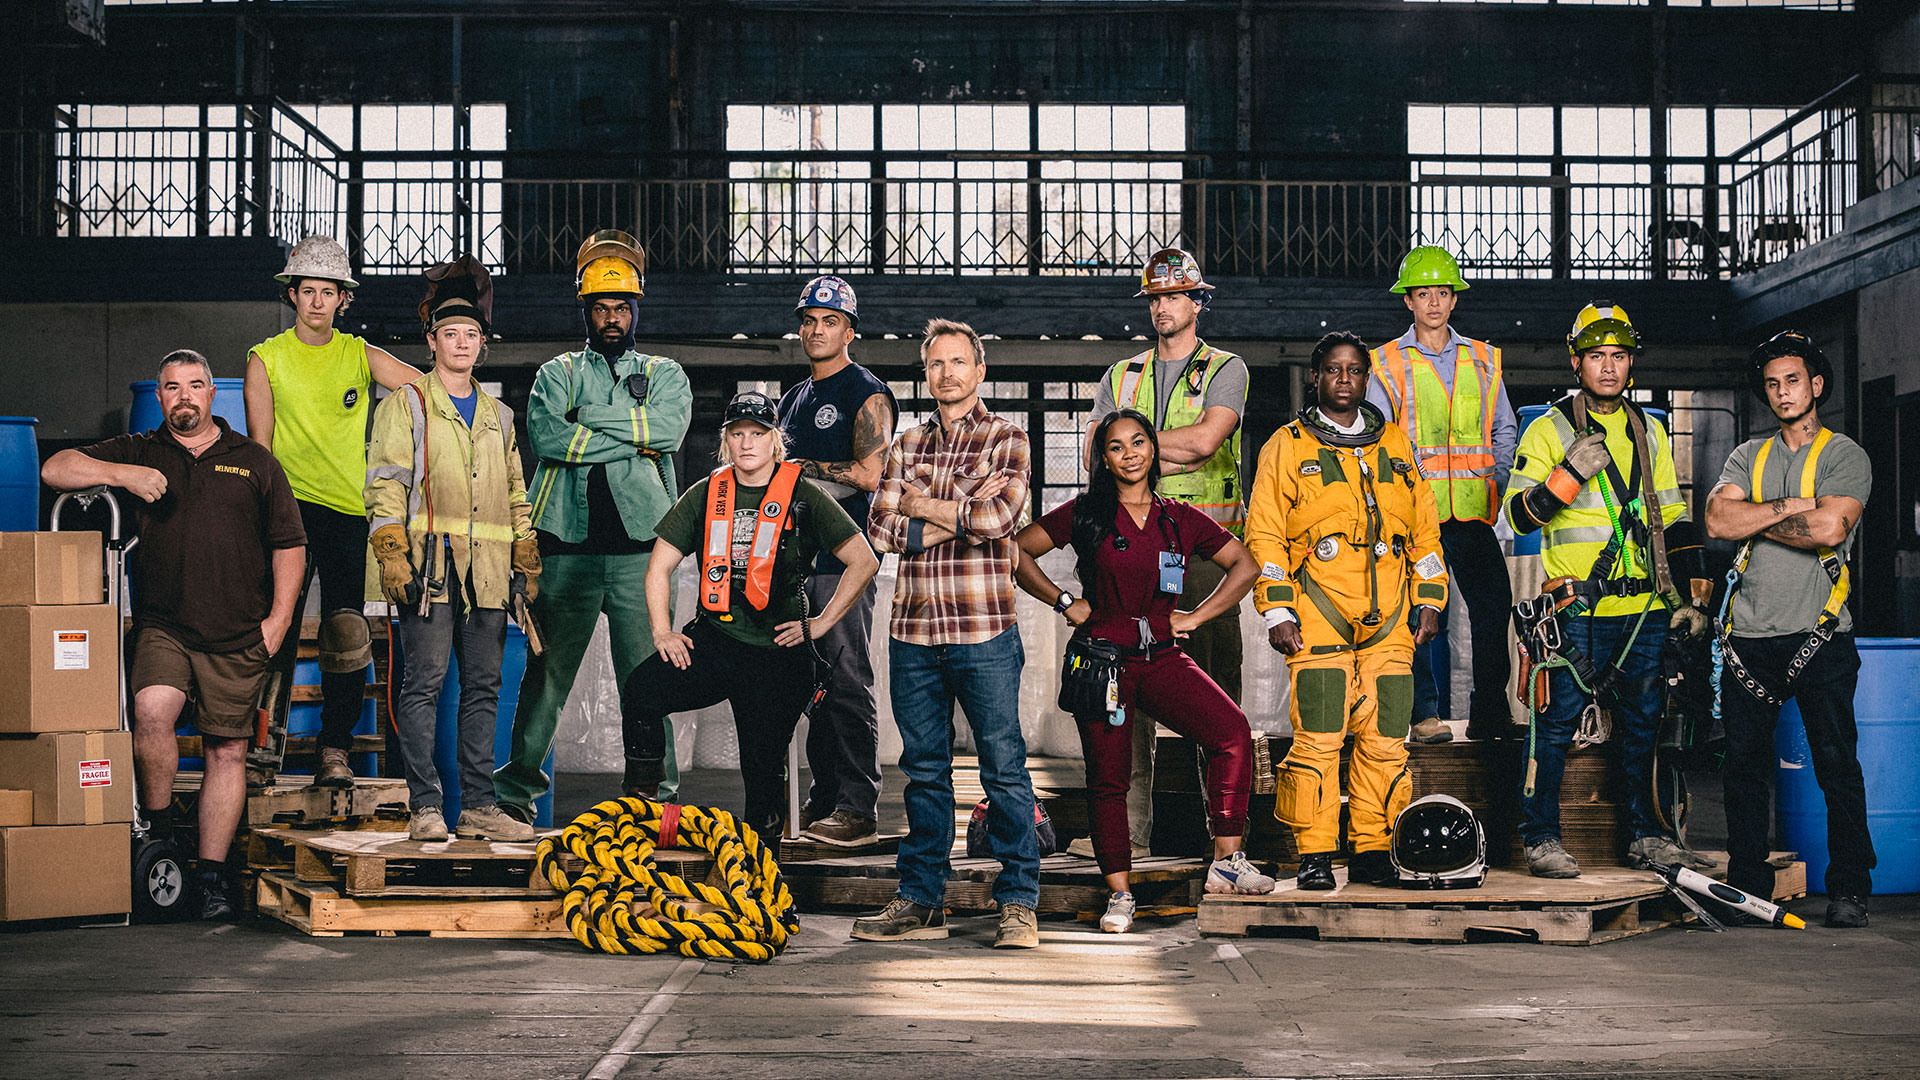 Don't miss the season premiere of Tough As Nails on Wednesday, Feb. 10 at 8/7c on CBS and CBS All Access.